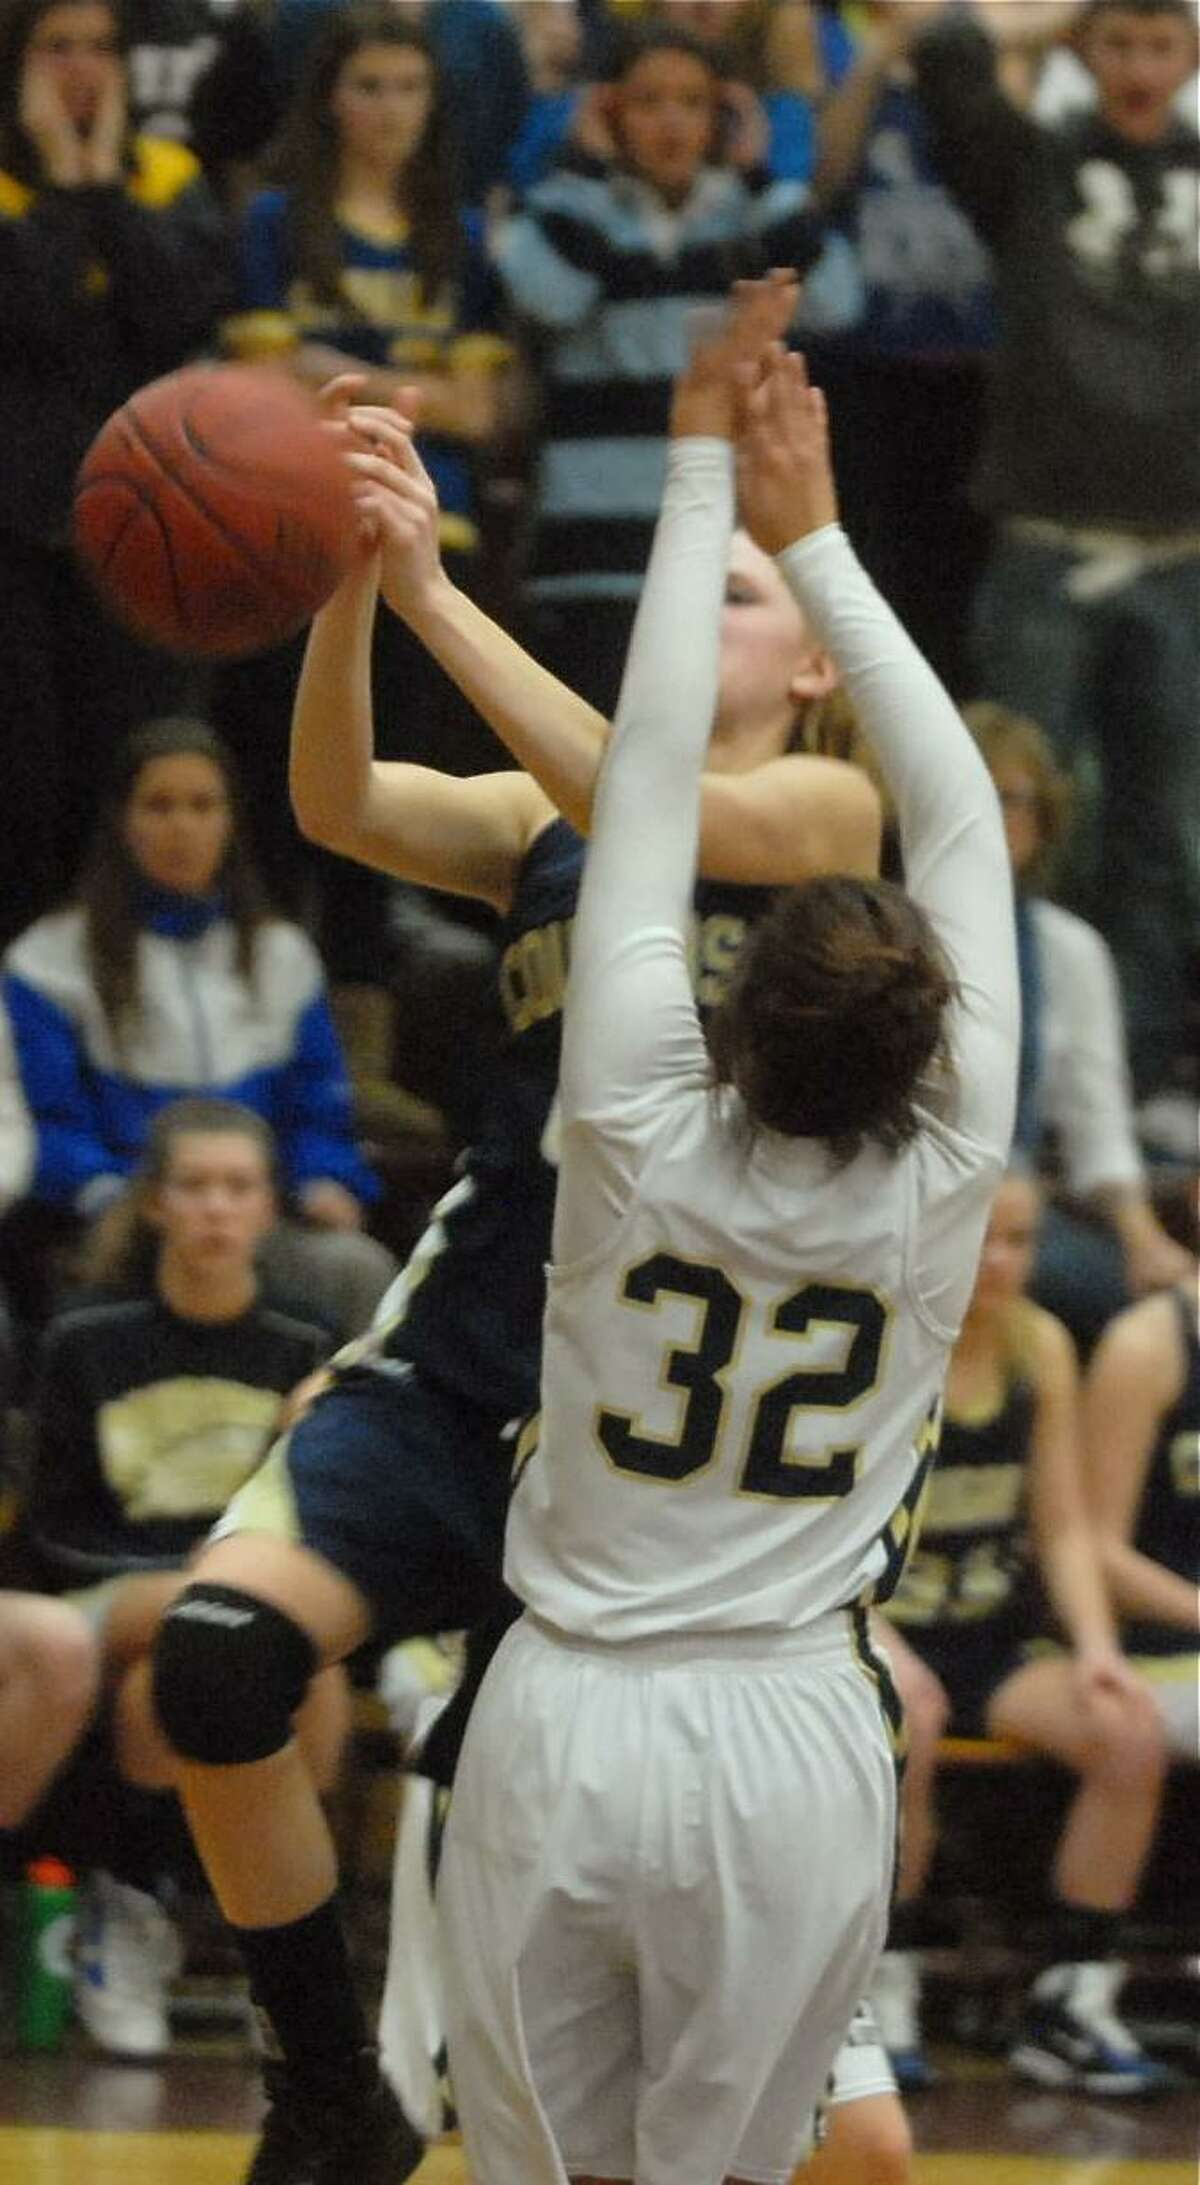 Mary Albl/New Haven Register A fourth-quarter rally led Notre Dame-Fairfield past Haddam-Killingworth and into the Class M title game, where the Lancers will meet undefeated Cromwell.